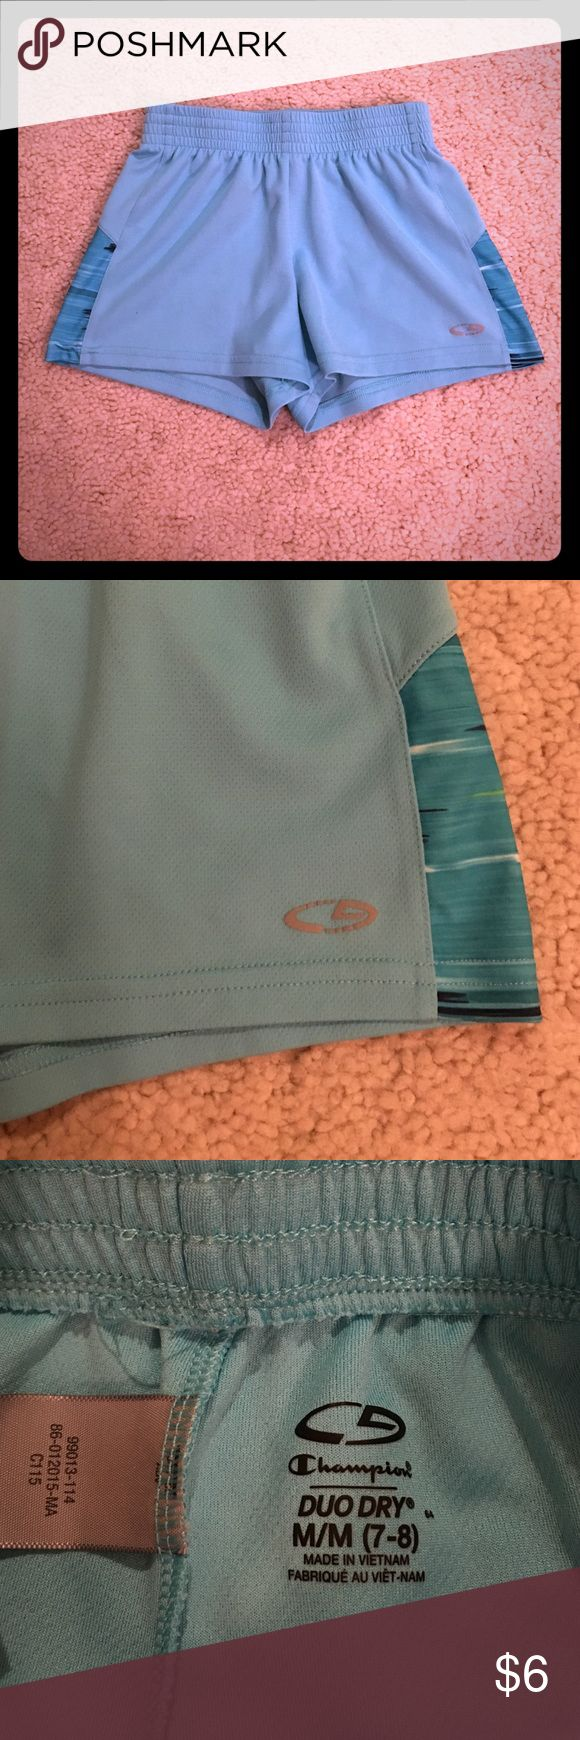 Champion brand kids athletic workout shorts M 7-8 This is a pair of turquoise blue colored duo-dry elastic/drawstring waist shorts by the Champion brand kids children's clothing line in girls size medium, meant to fit a size 7-8. These shorts are in excellent used condition! Thanks for looking!!! Champion Bottoms Shorts